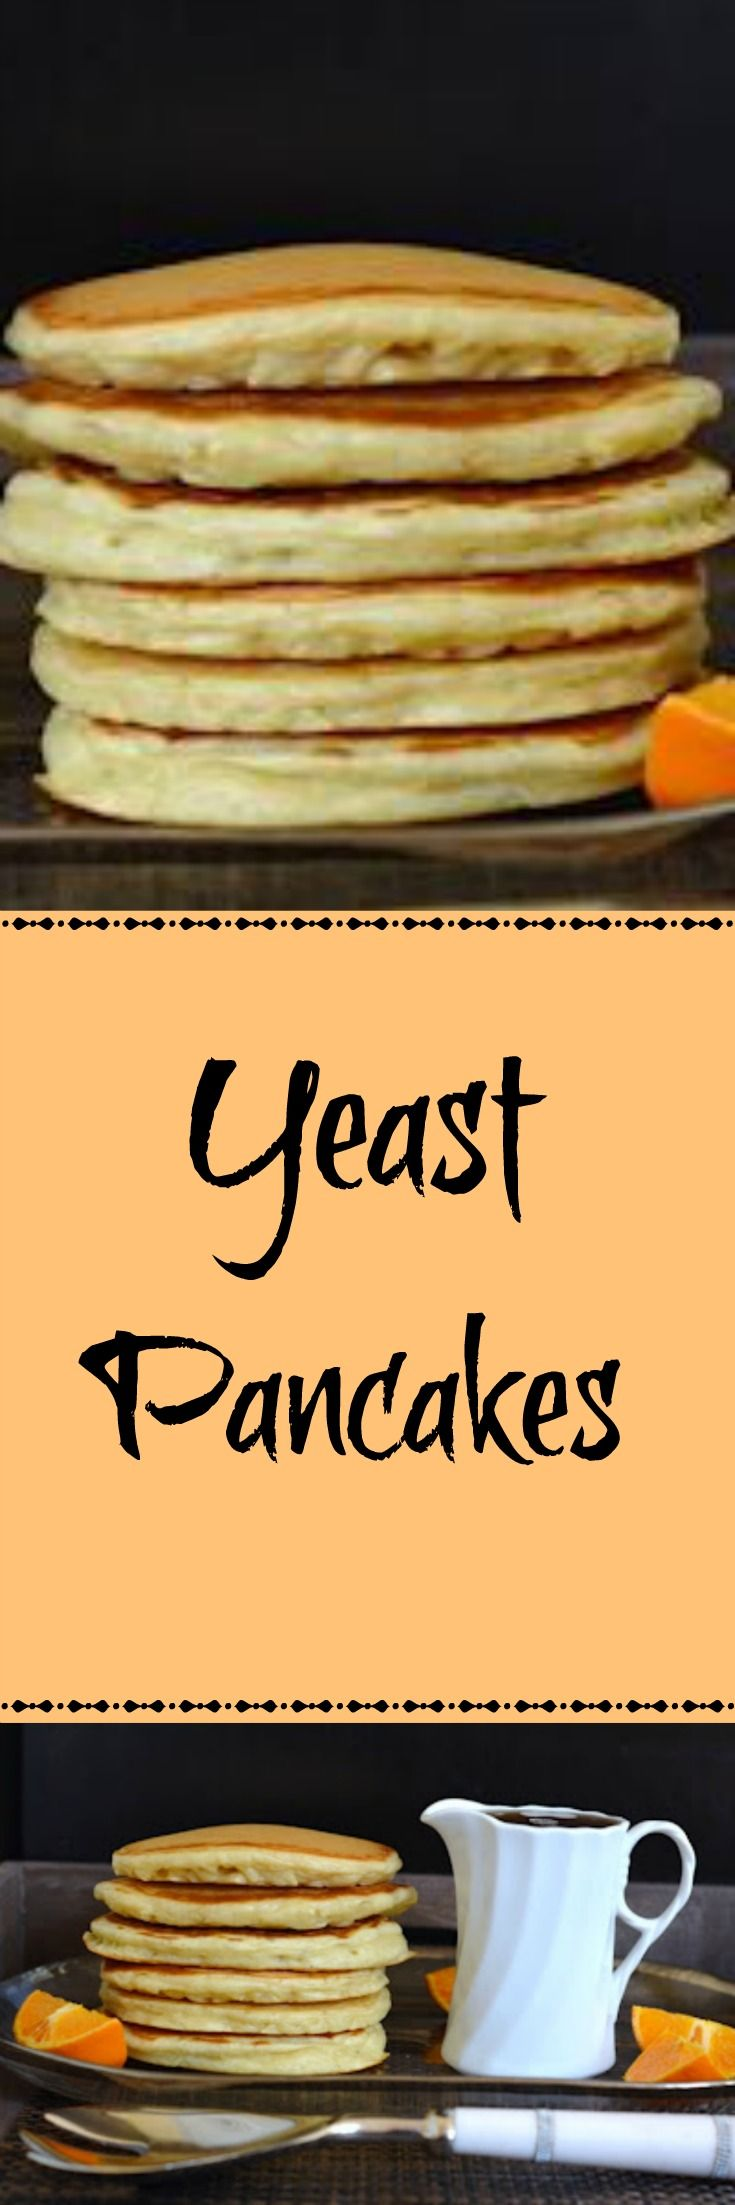 Fluffy and light pancakes with a subtle yeast flavor and aroma. Perfect for everyday breakfast or special occasions. Recipe at redstaryeast.com.